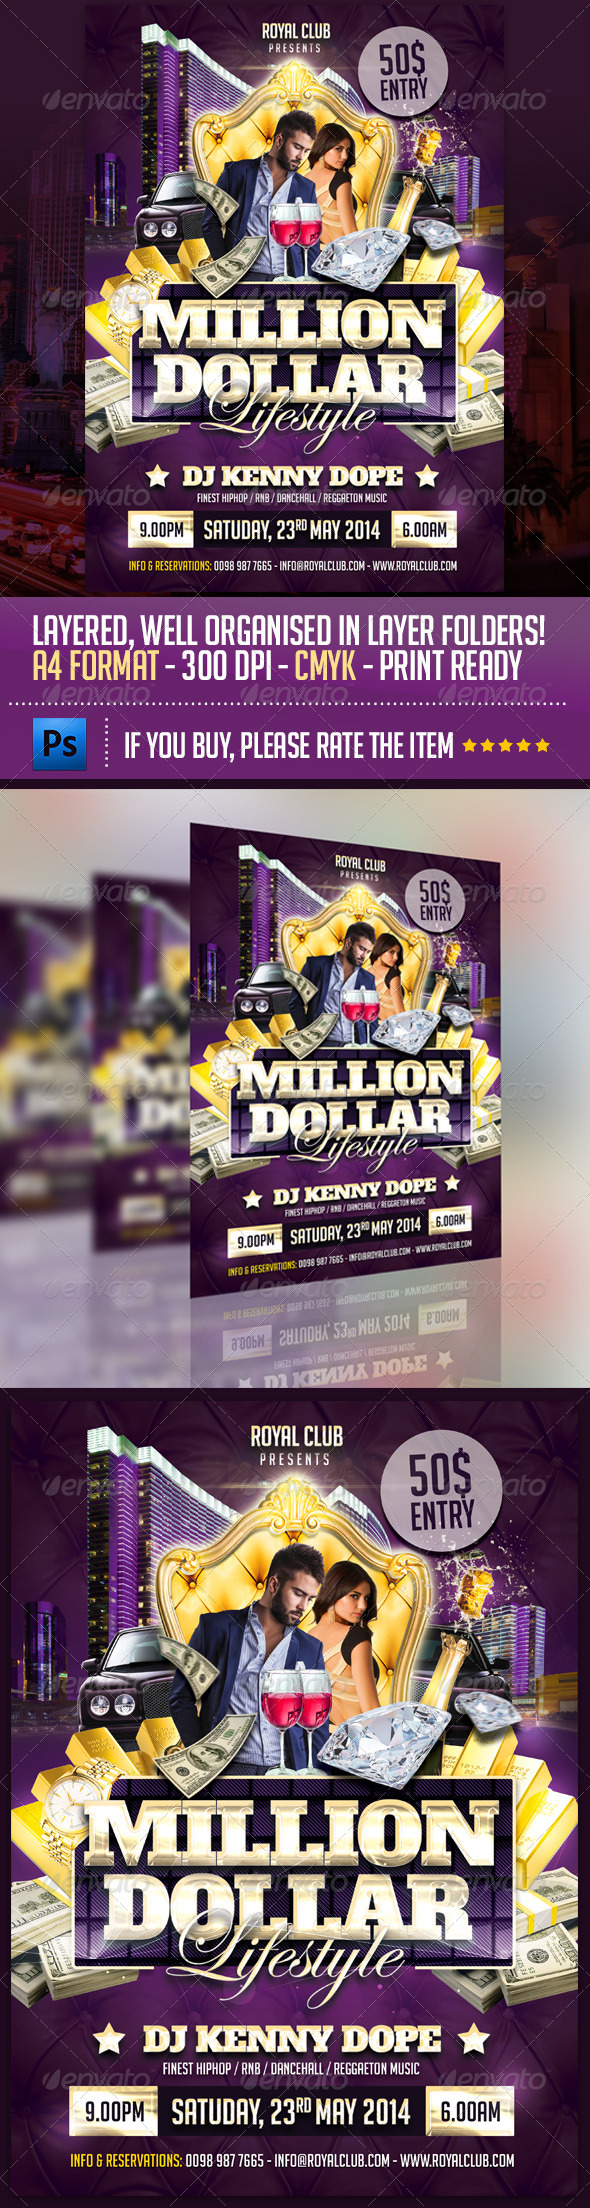 Million Dollar Lifestyle Party Flyer Template